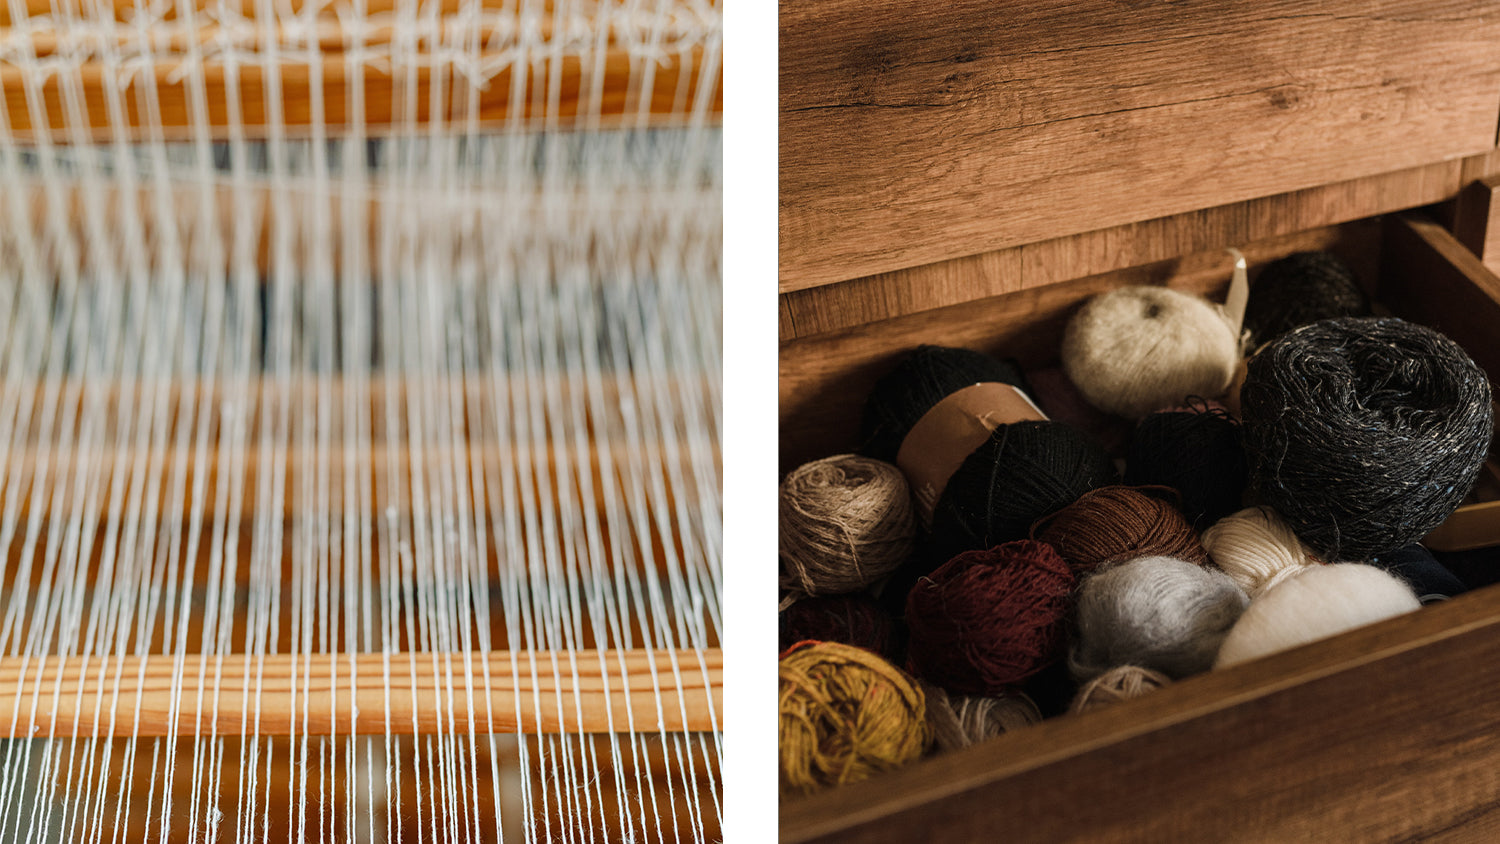 A traditional weaving loom and a collection of rustic yarns.